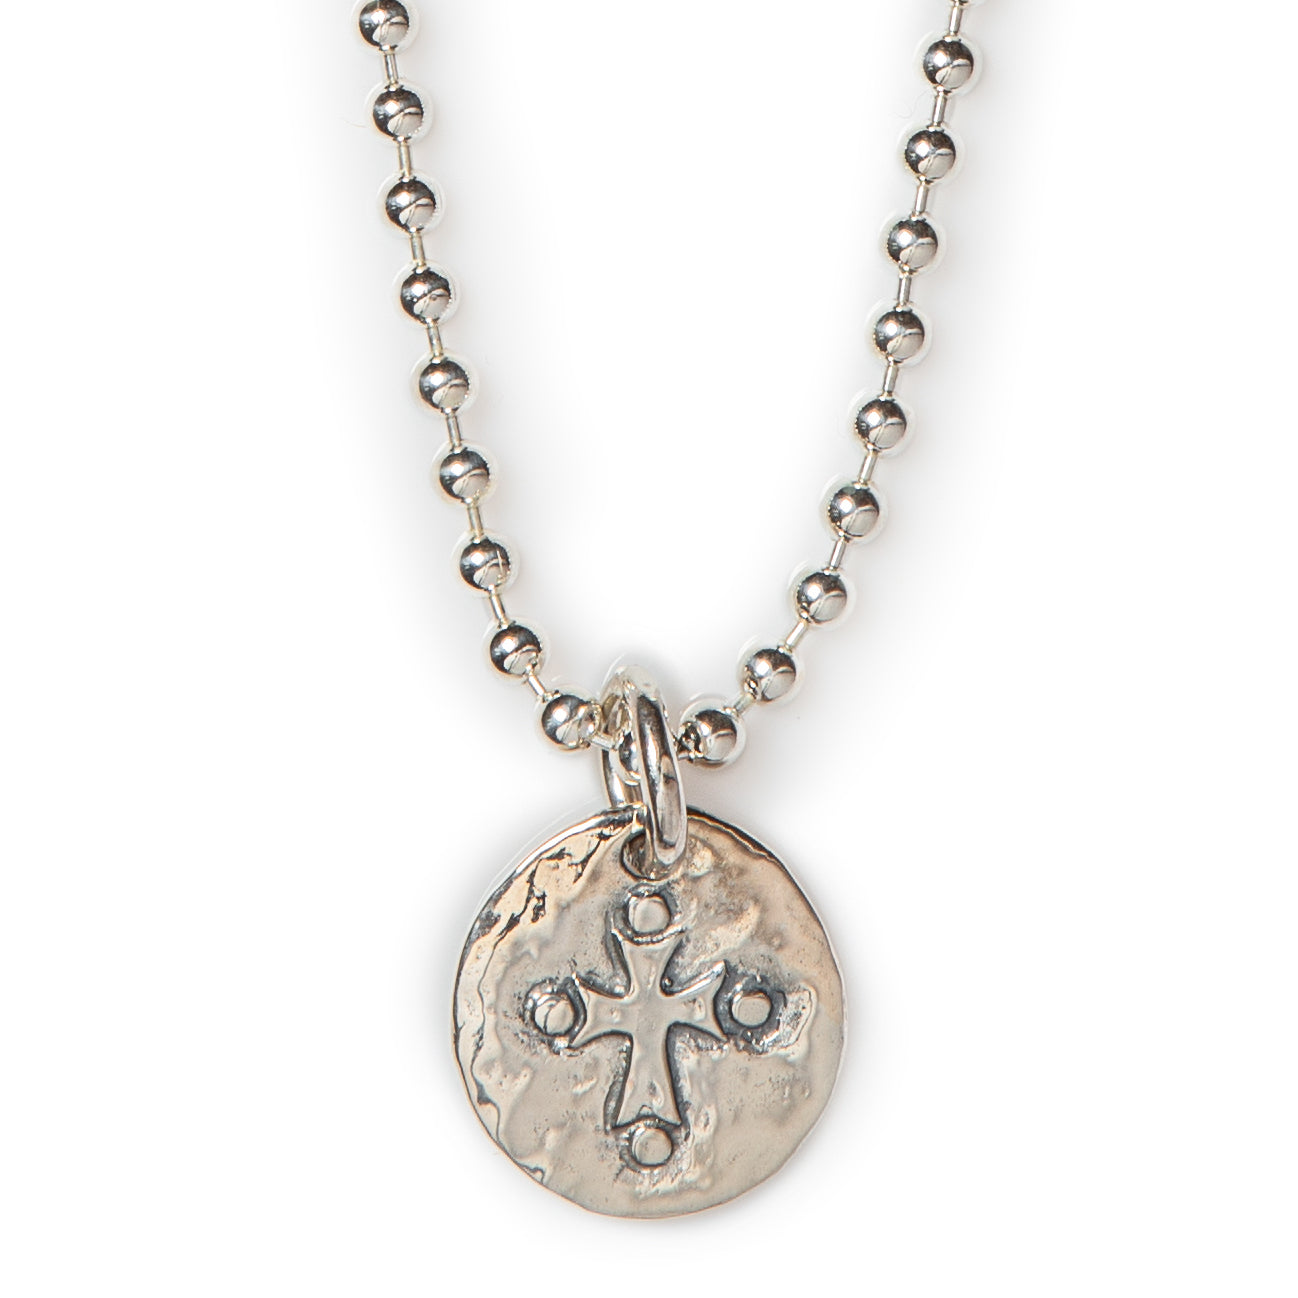 "Jai Style simple, elegant 18"" necklace with .925 sterling silver 4mm ball chain adorned with handmade sterling silver cross pendant."